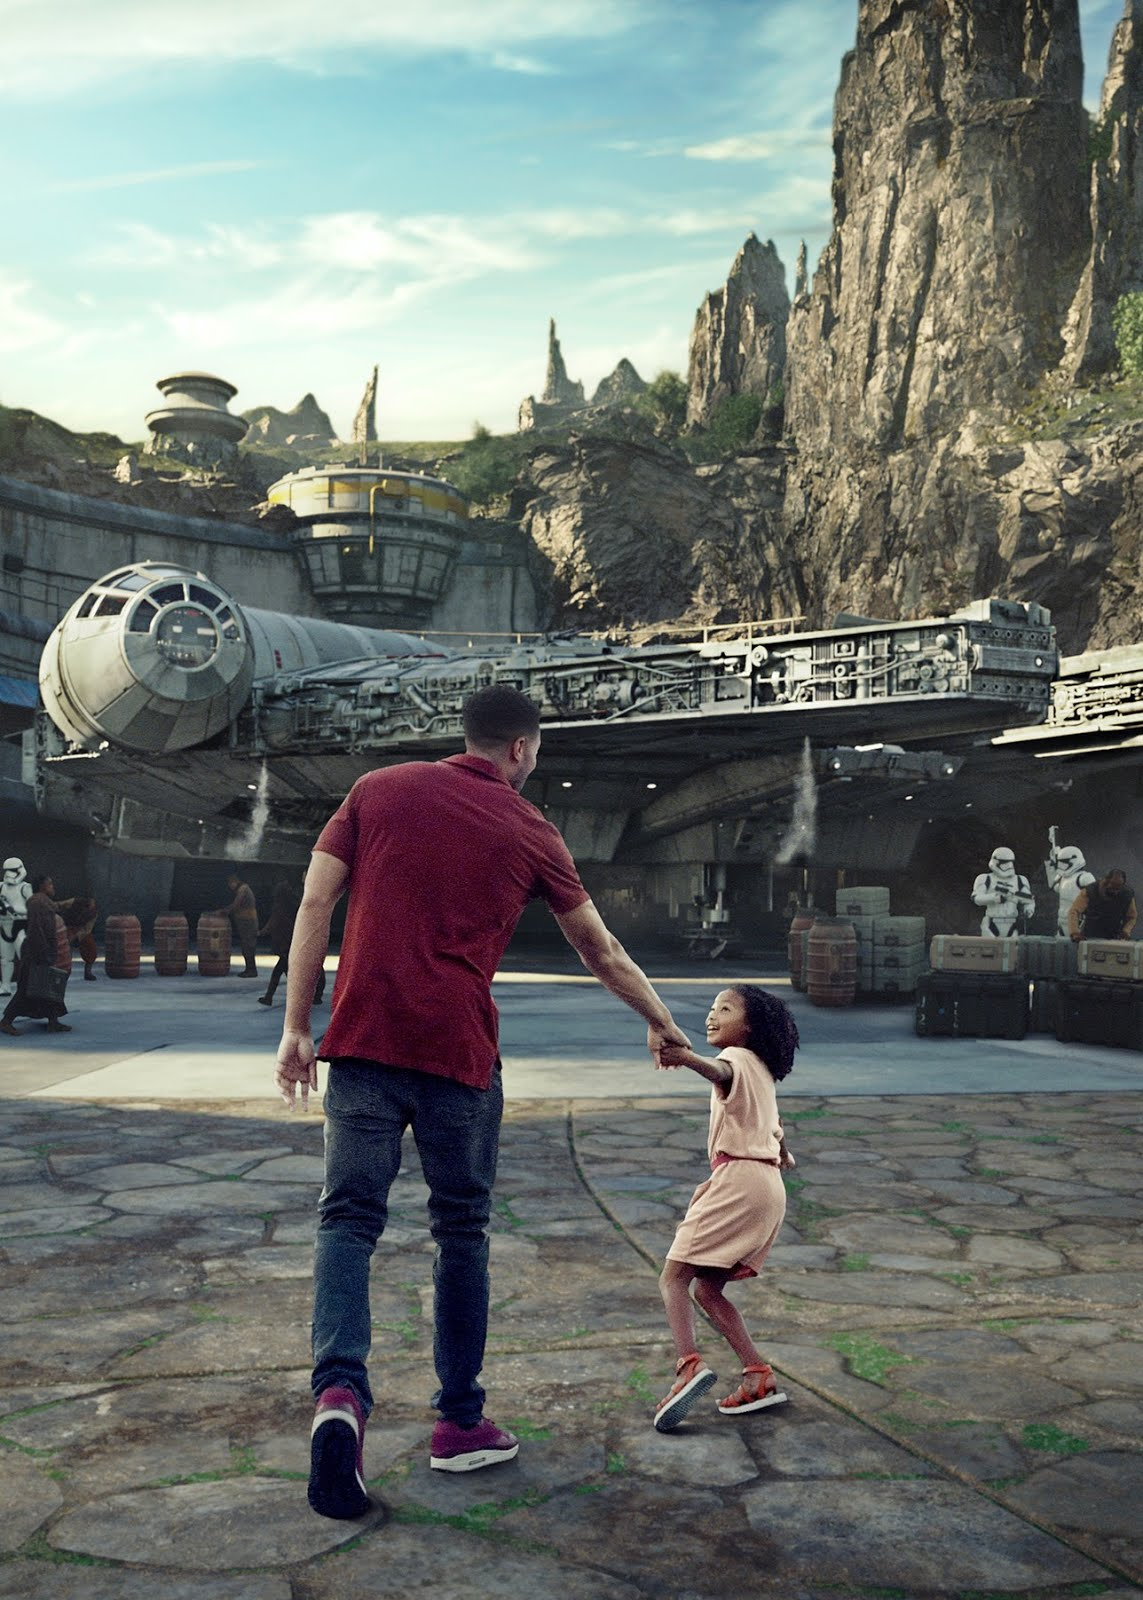 Disneyland Star Wars Galaxy's Edge - 7 tips to help you plan for your visit